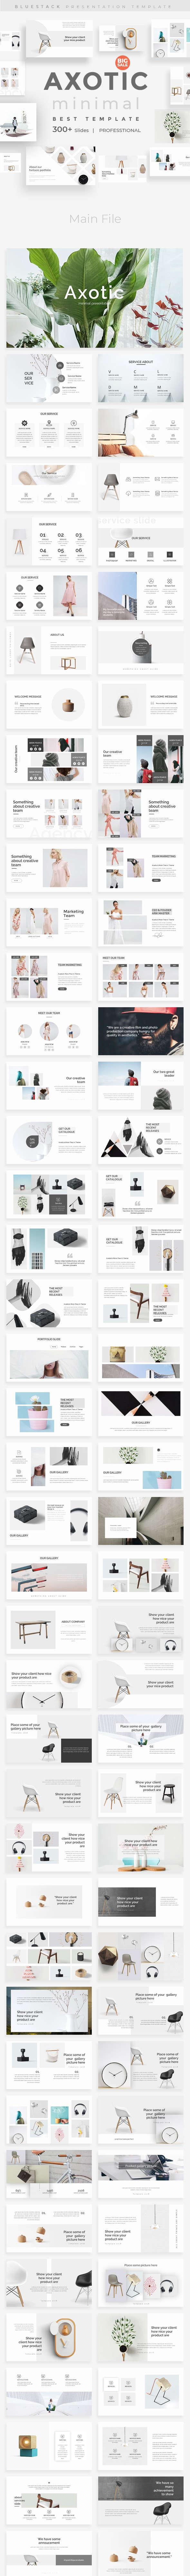 Axotic Creative Powerpoint Template - Creative PowerPoint Templates